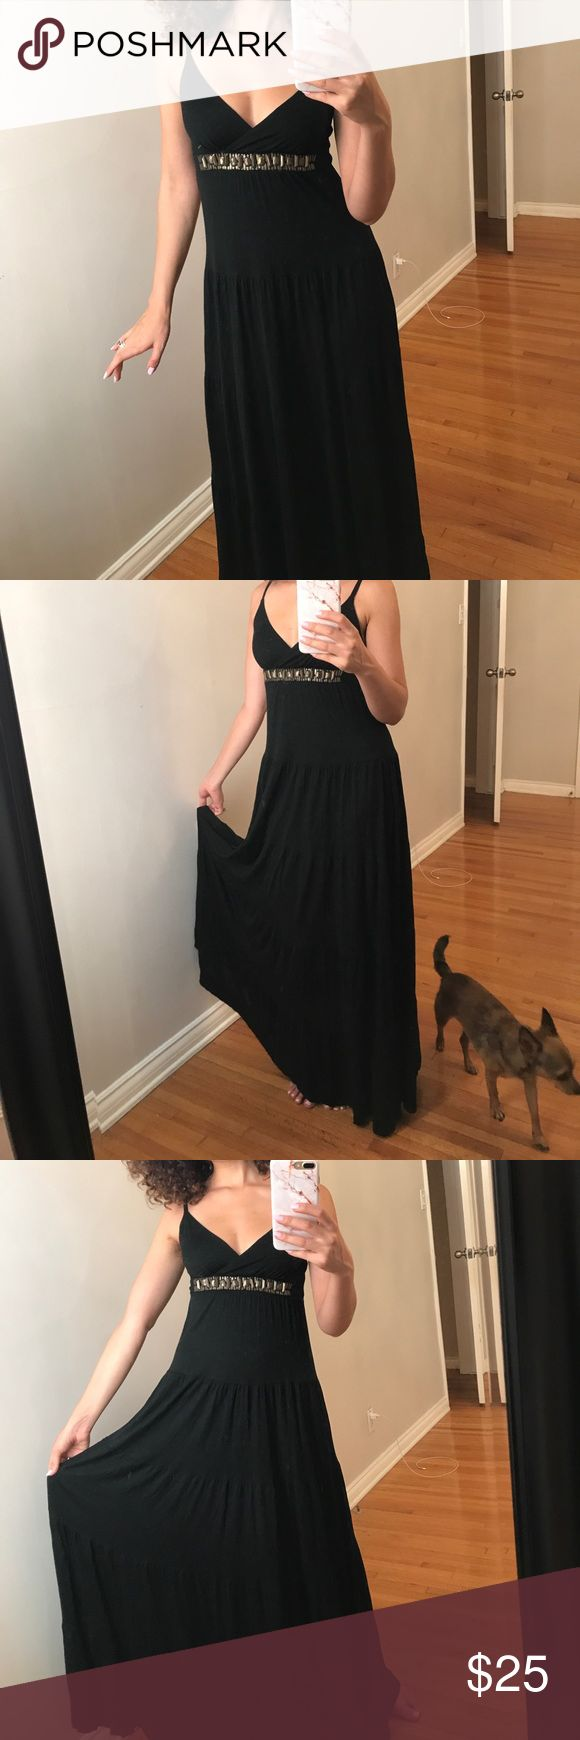 Black Grecian Maxi Dress Black Grecian maxi dress with flowy skirt and brass detailing. Adjustable straps and has stretch. In great condition. Would fit a small, size 4, and maybe even a medium. Very comfortable and flattering on the body. New York & Company Dresses Maxi